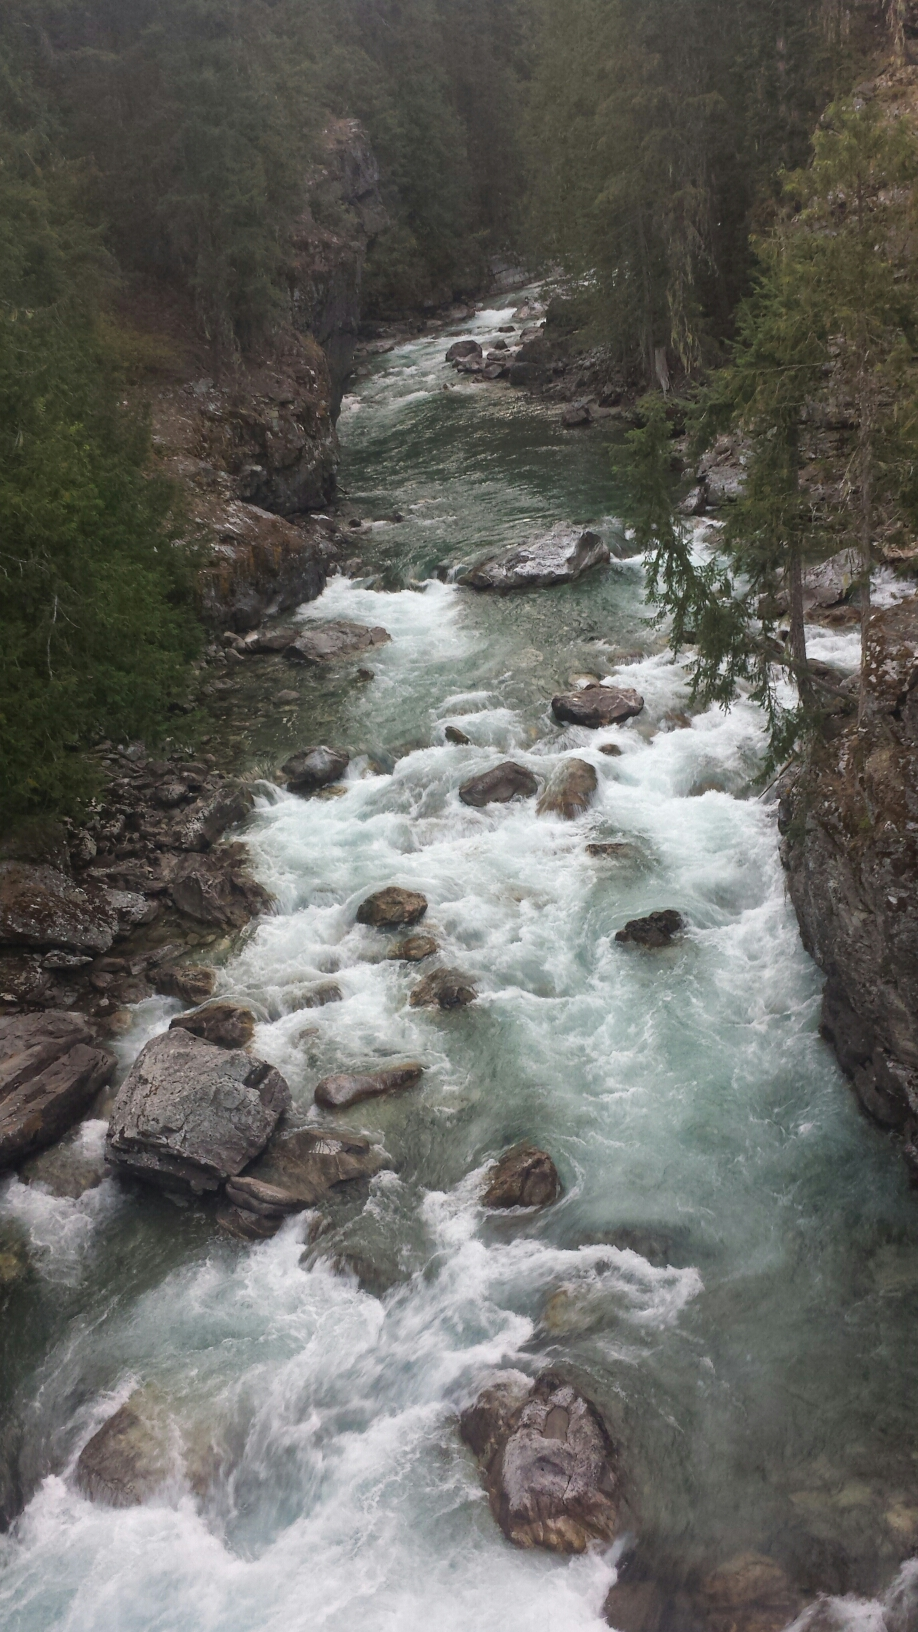 The Stehekin River